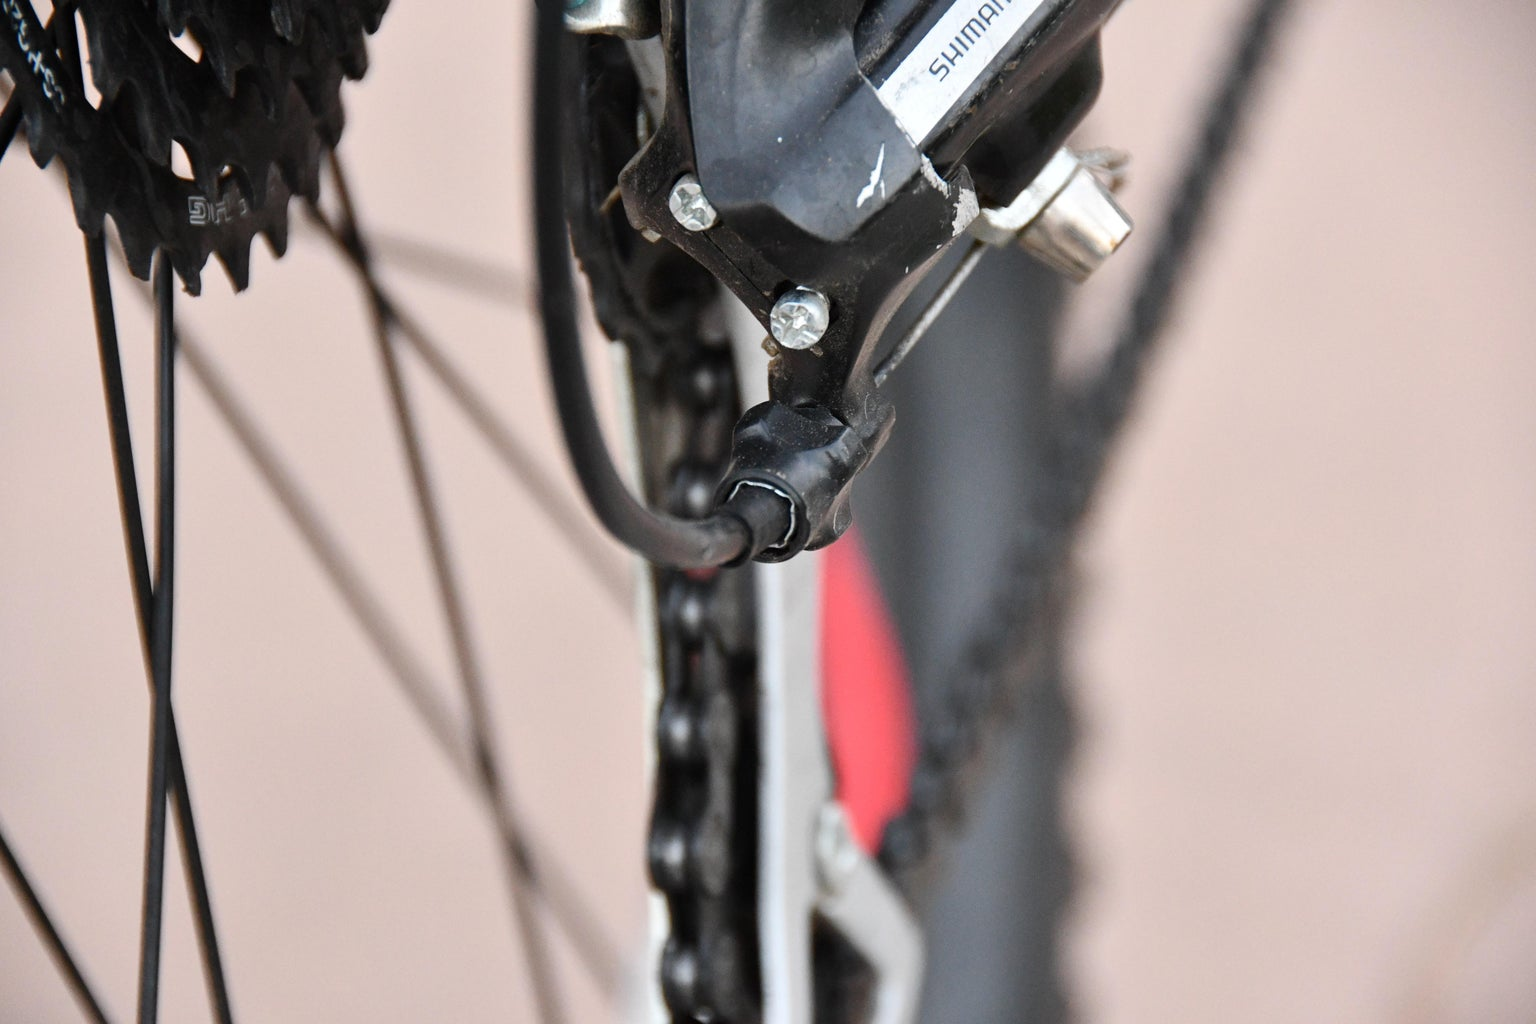 Tuning the Derailleurs